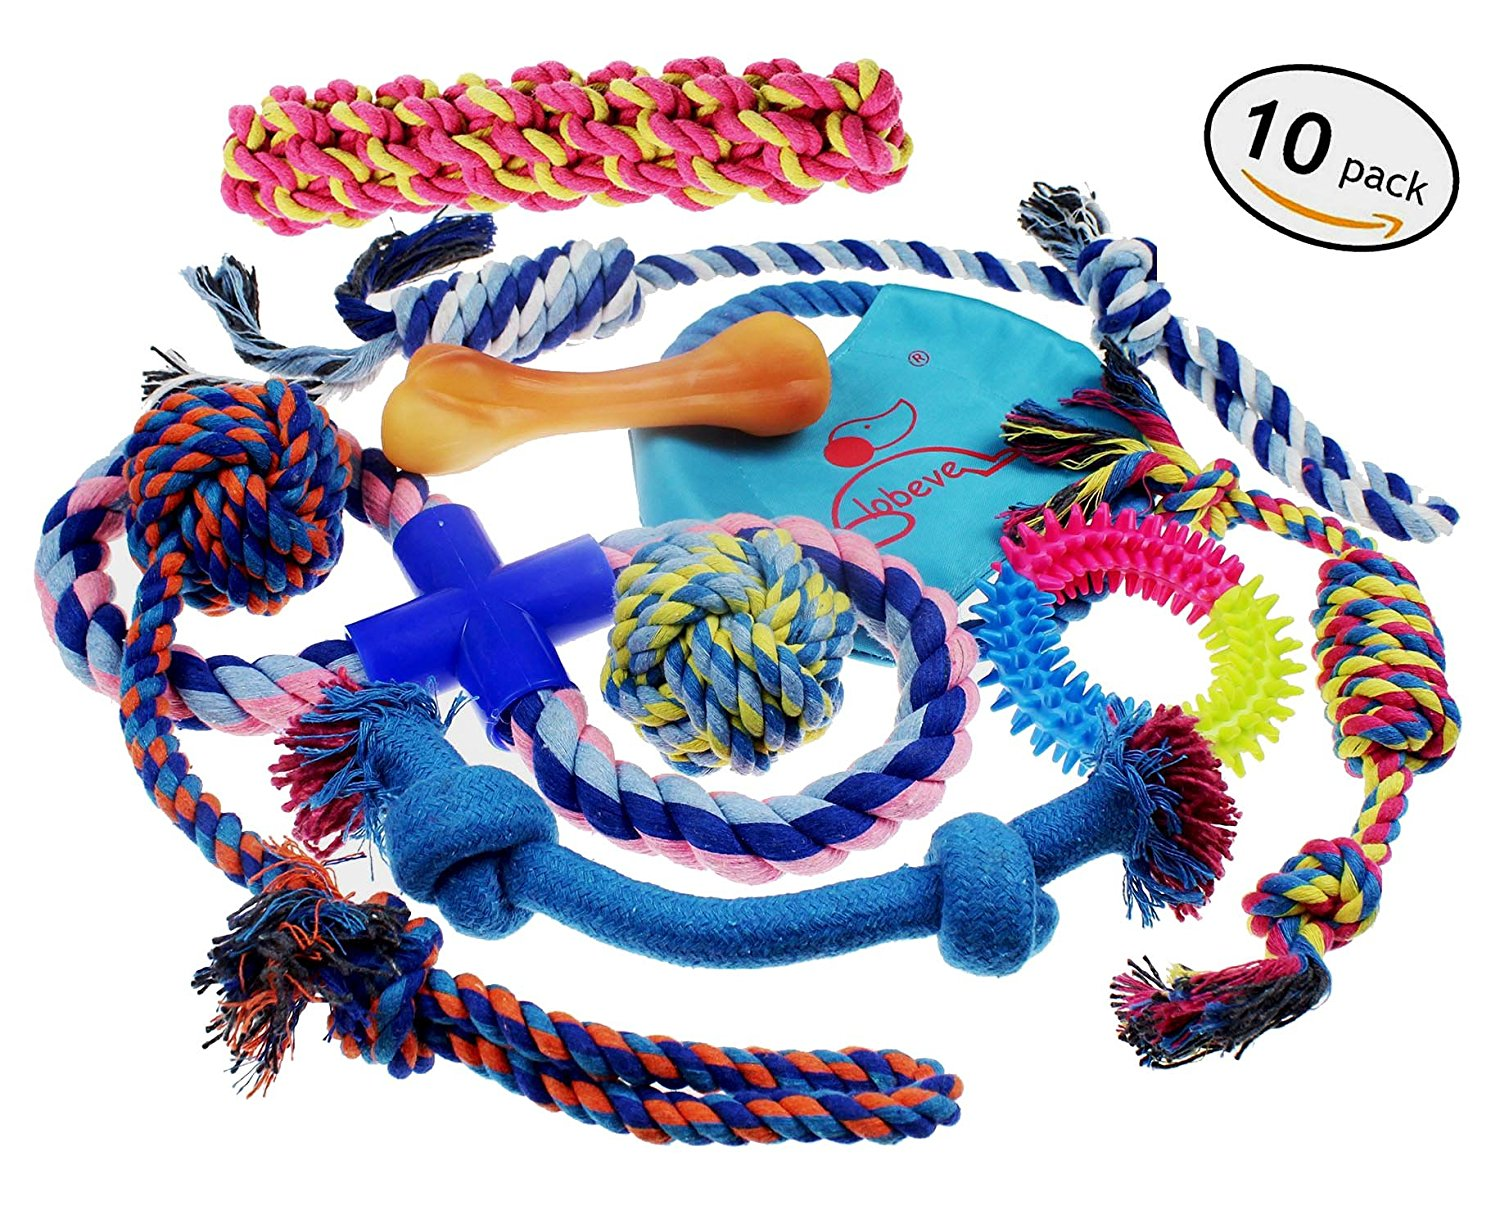 Lobeve Dog Toys 10 Pack Gift Set, for Medium - Small Dogs